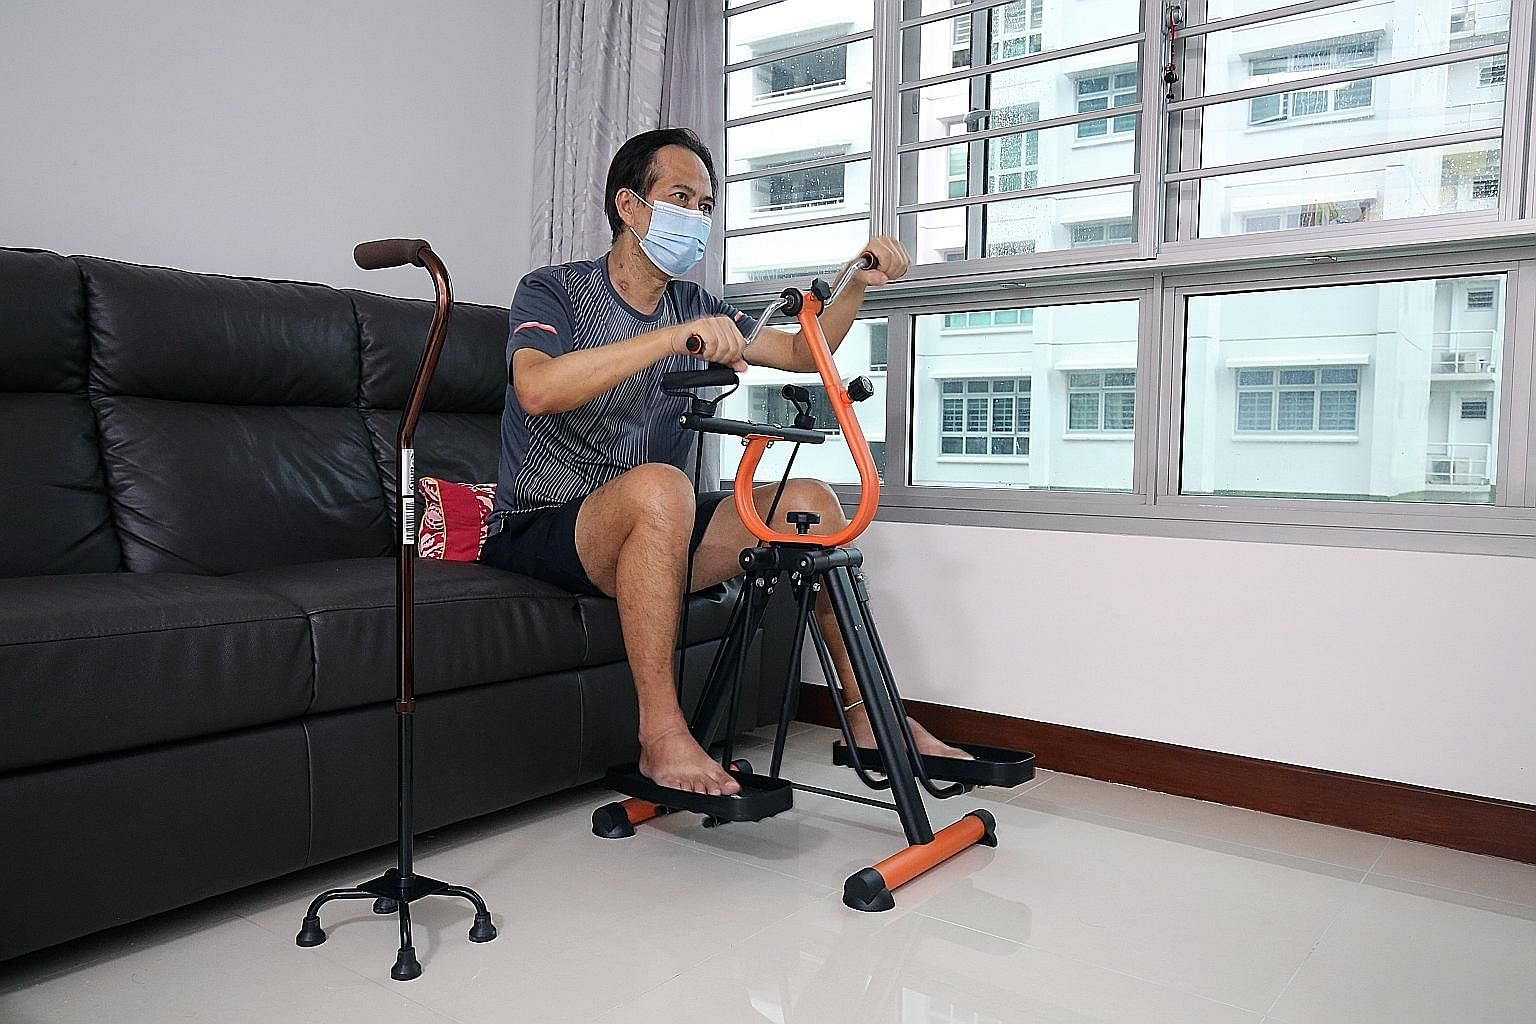 Mr Toh doing exercises at home to aid his recovery. He now requires a walking stick to support him in his movements. For 13 days, he had to rely on a ventilator to help him breathe. Left: Mr Toh Kai Kiat's neck still bears bruises from the tubes that